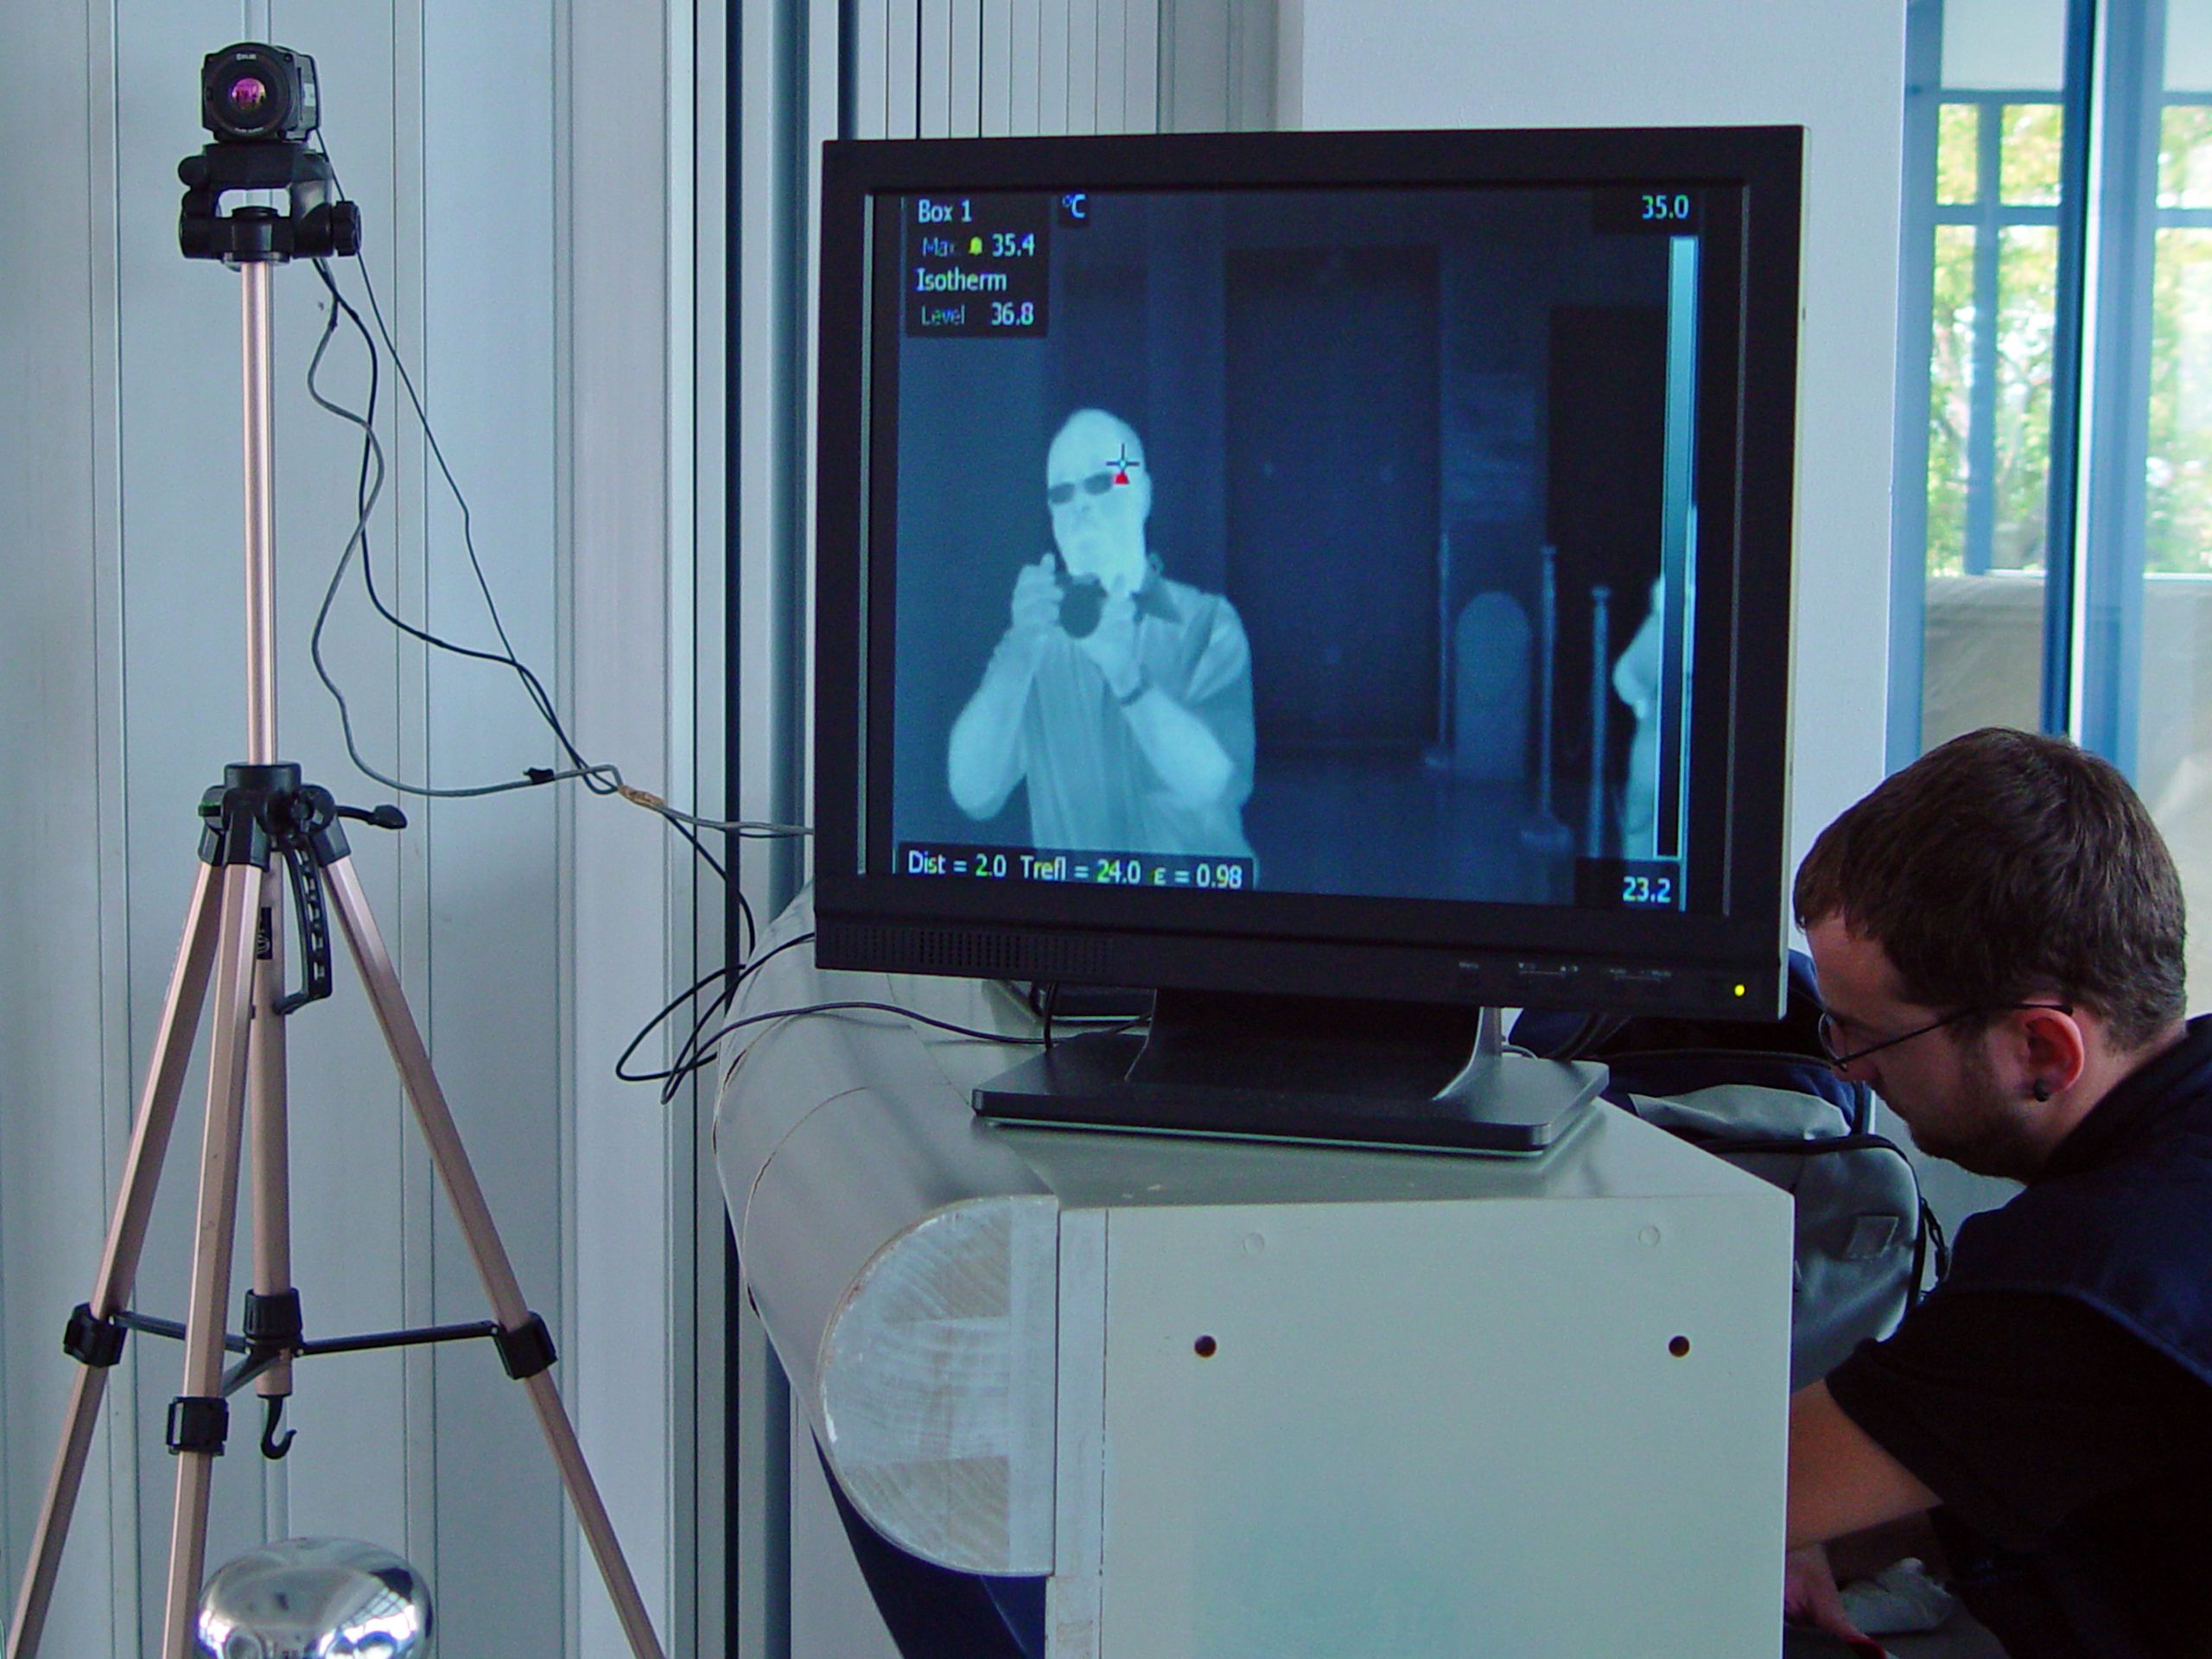 Thermal scanner at an airport